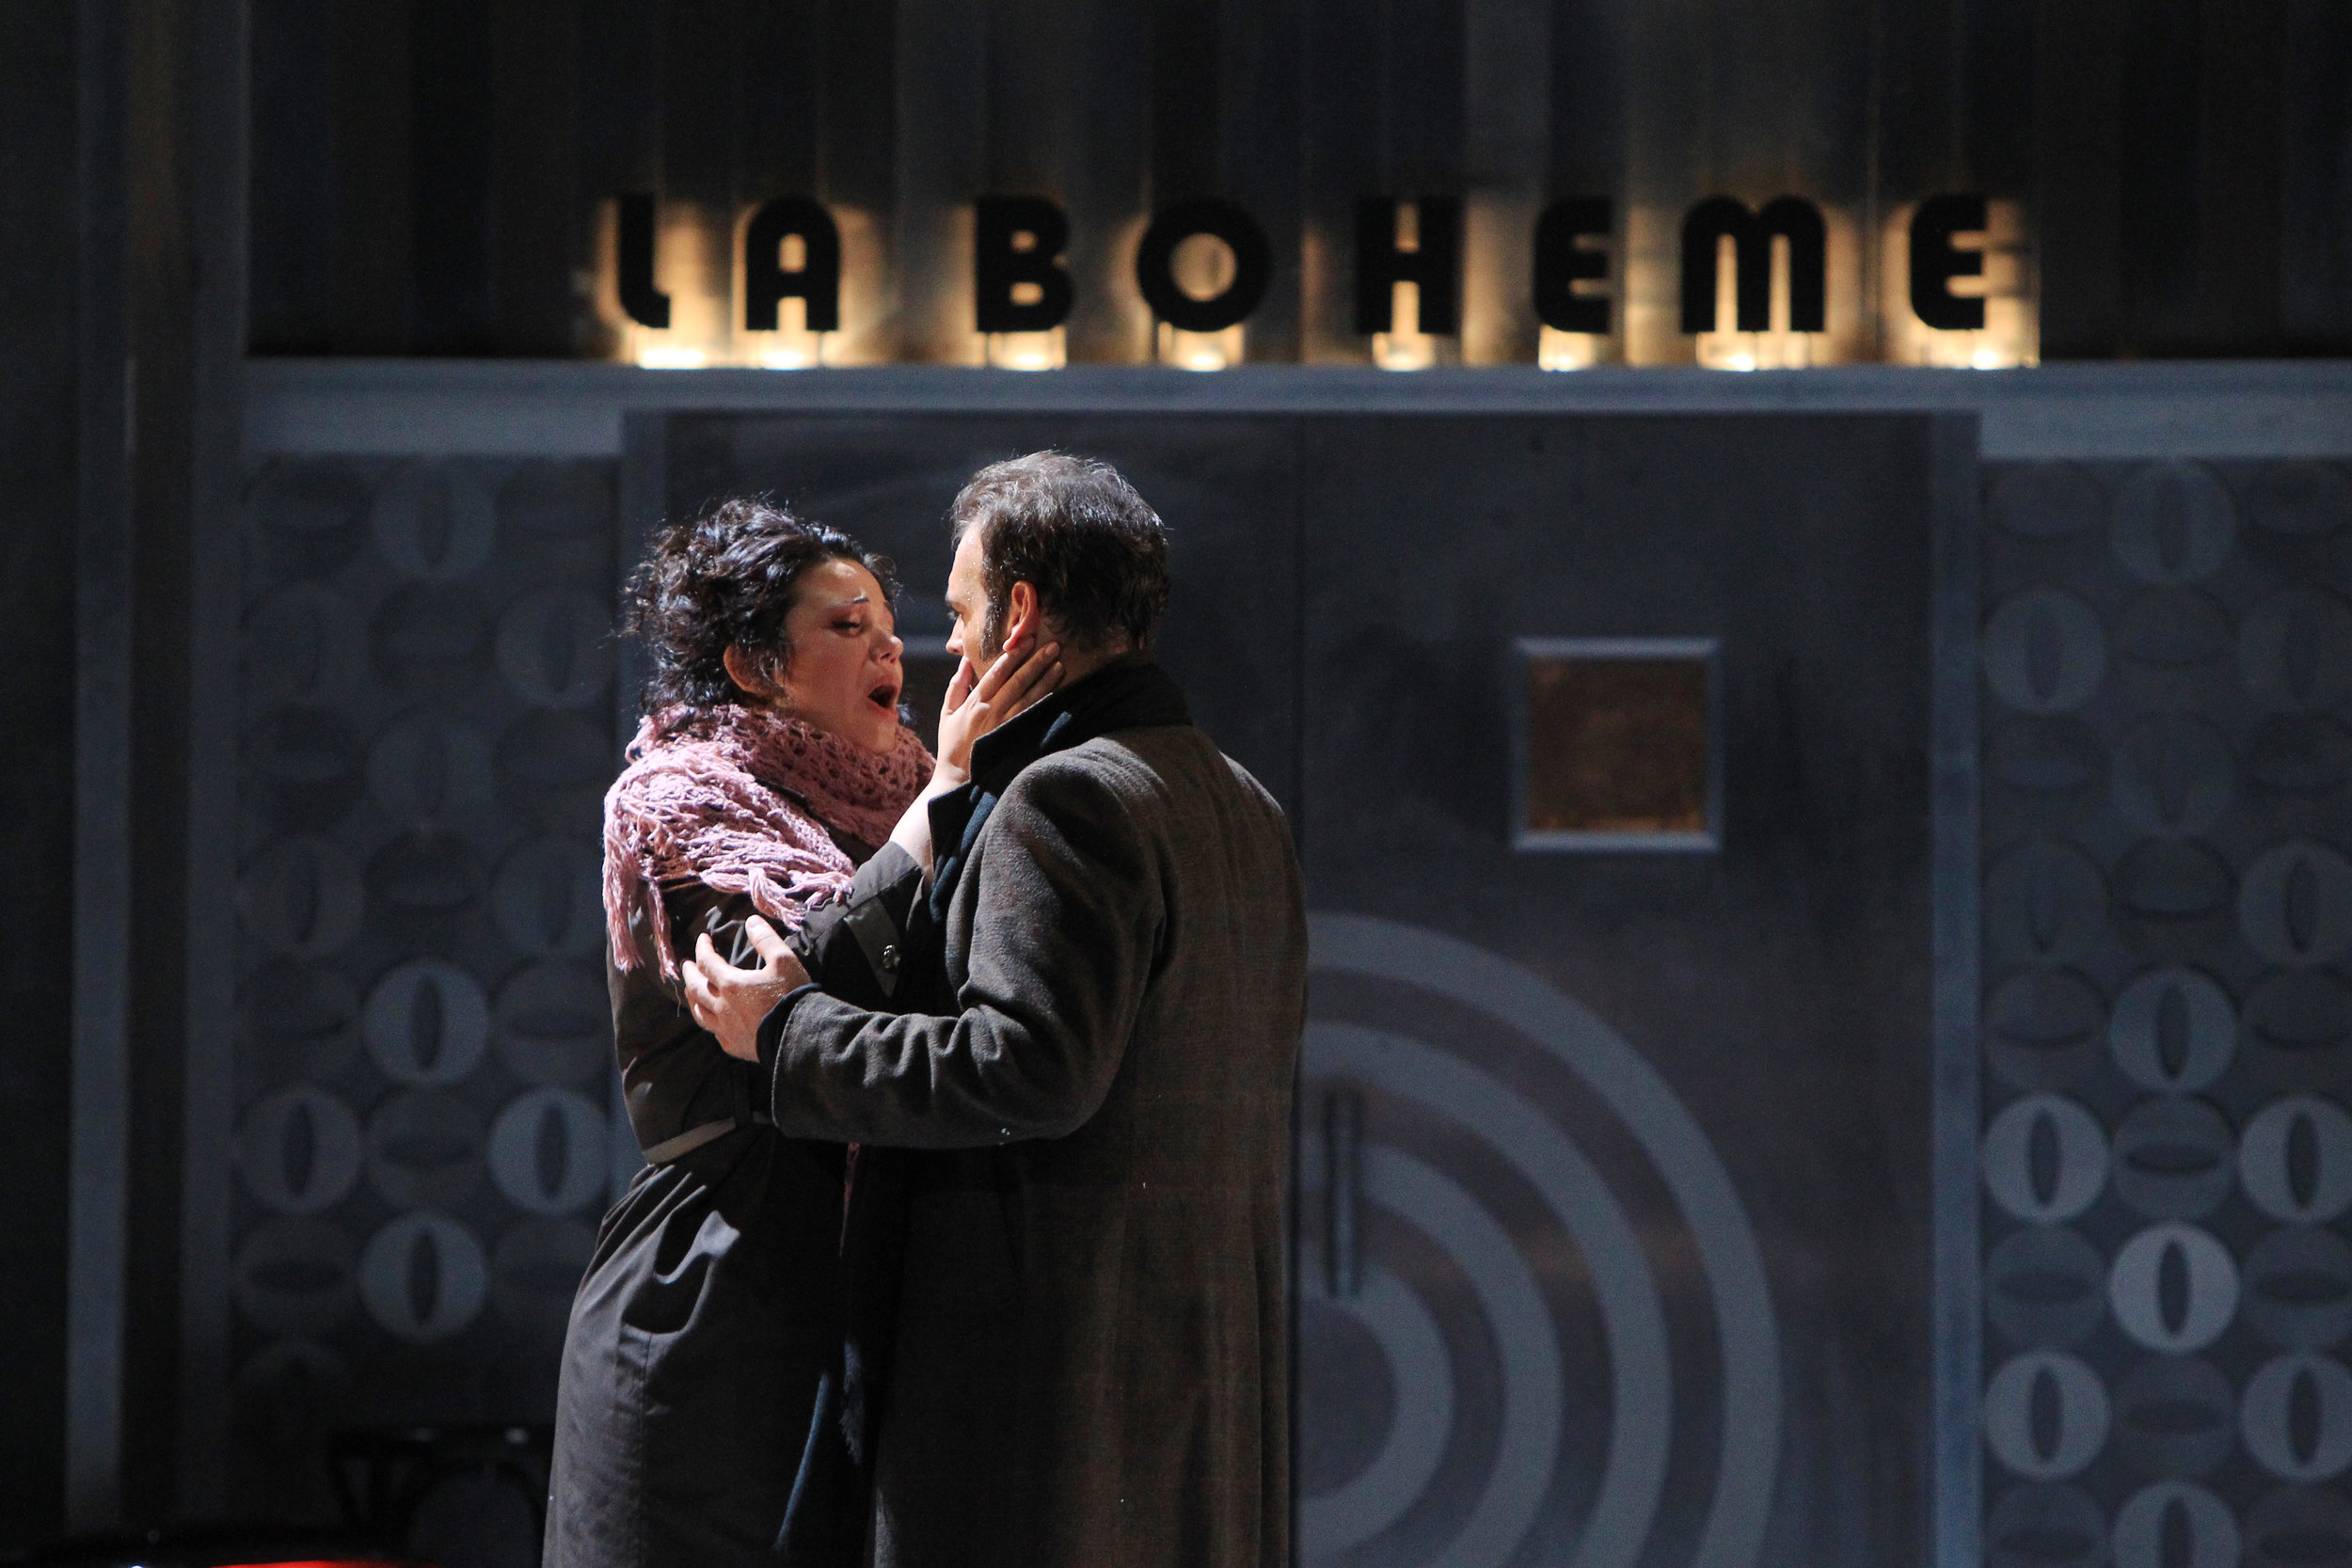 La Boheme at Opera National de Bordeaux - Photo by Guillaume Bonnaud